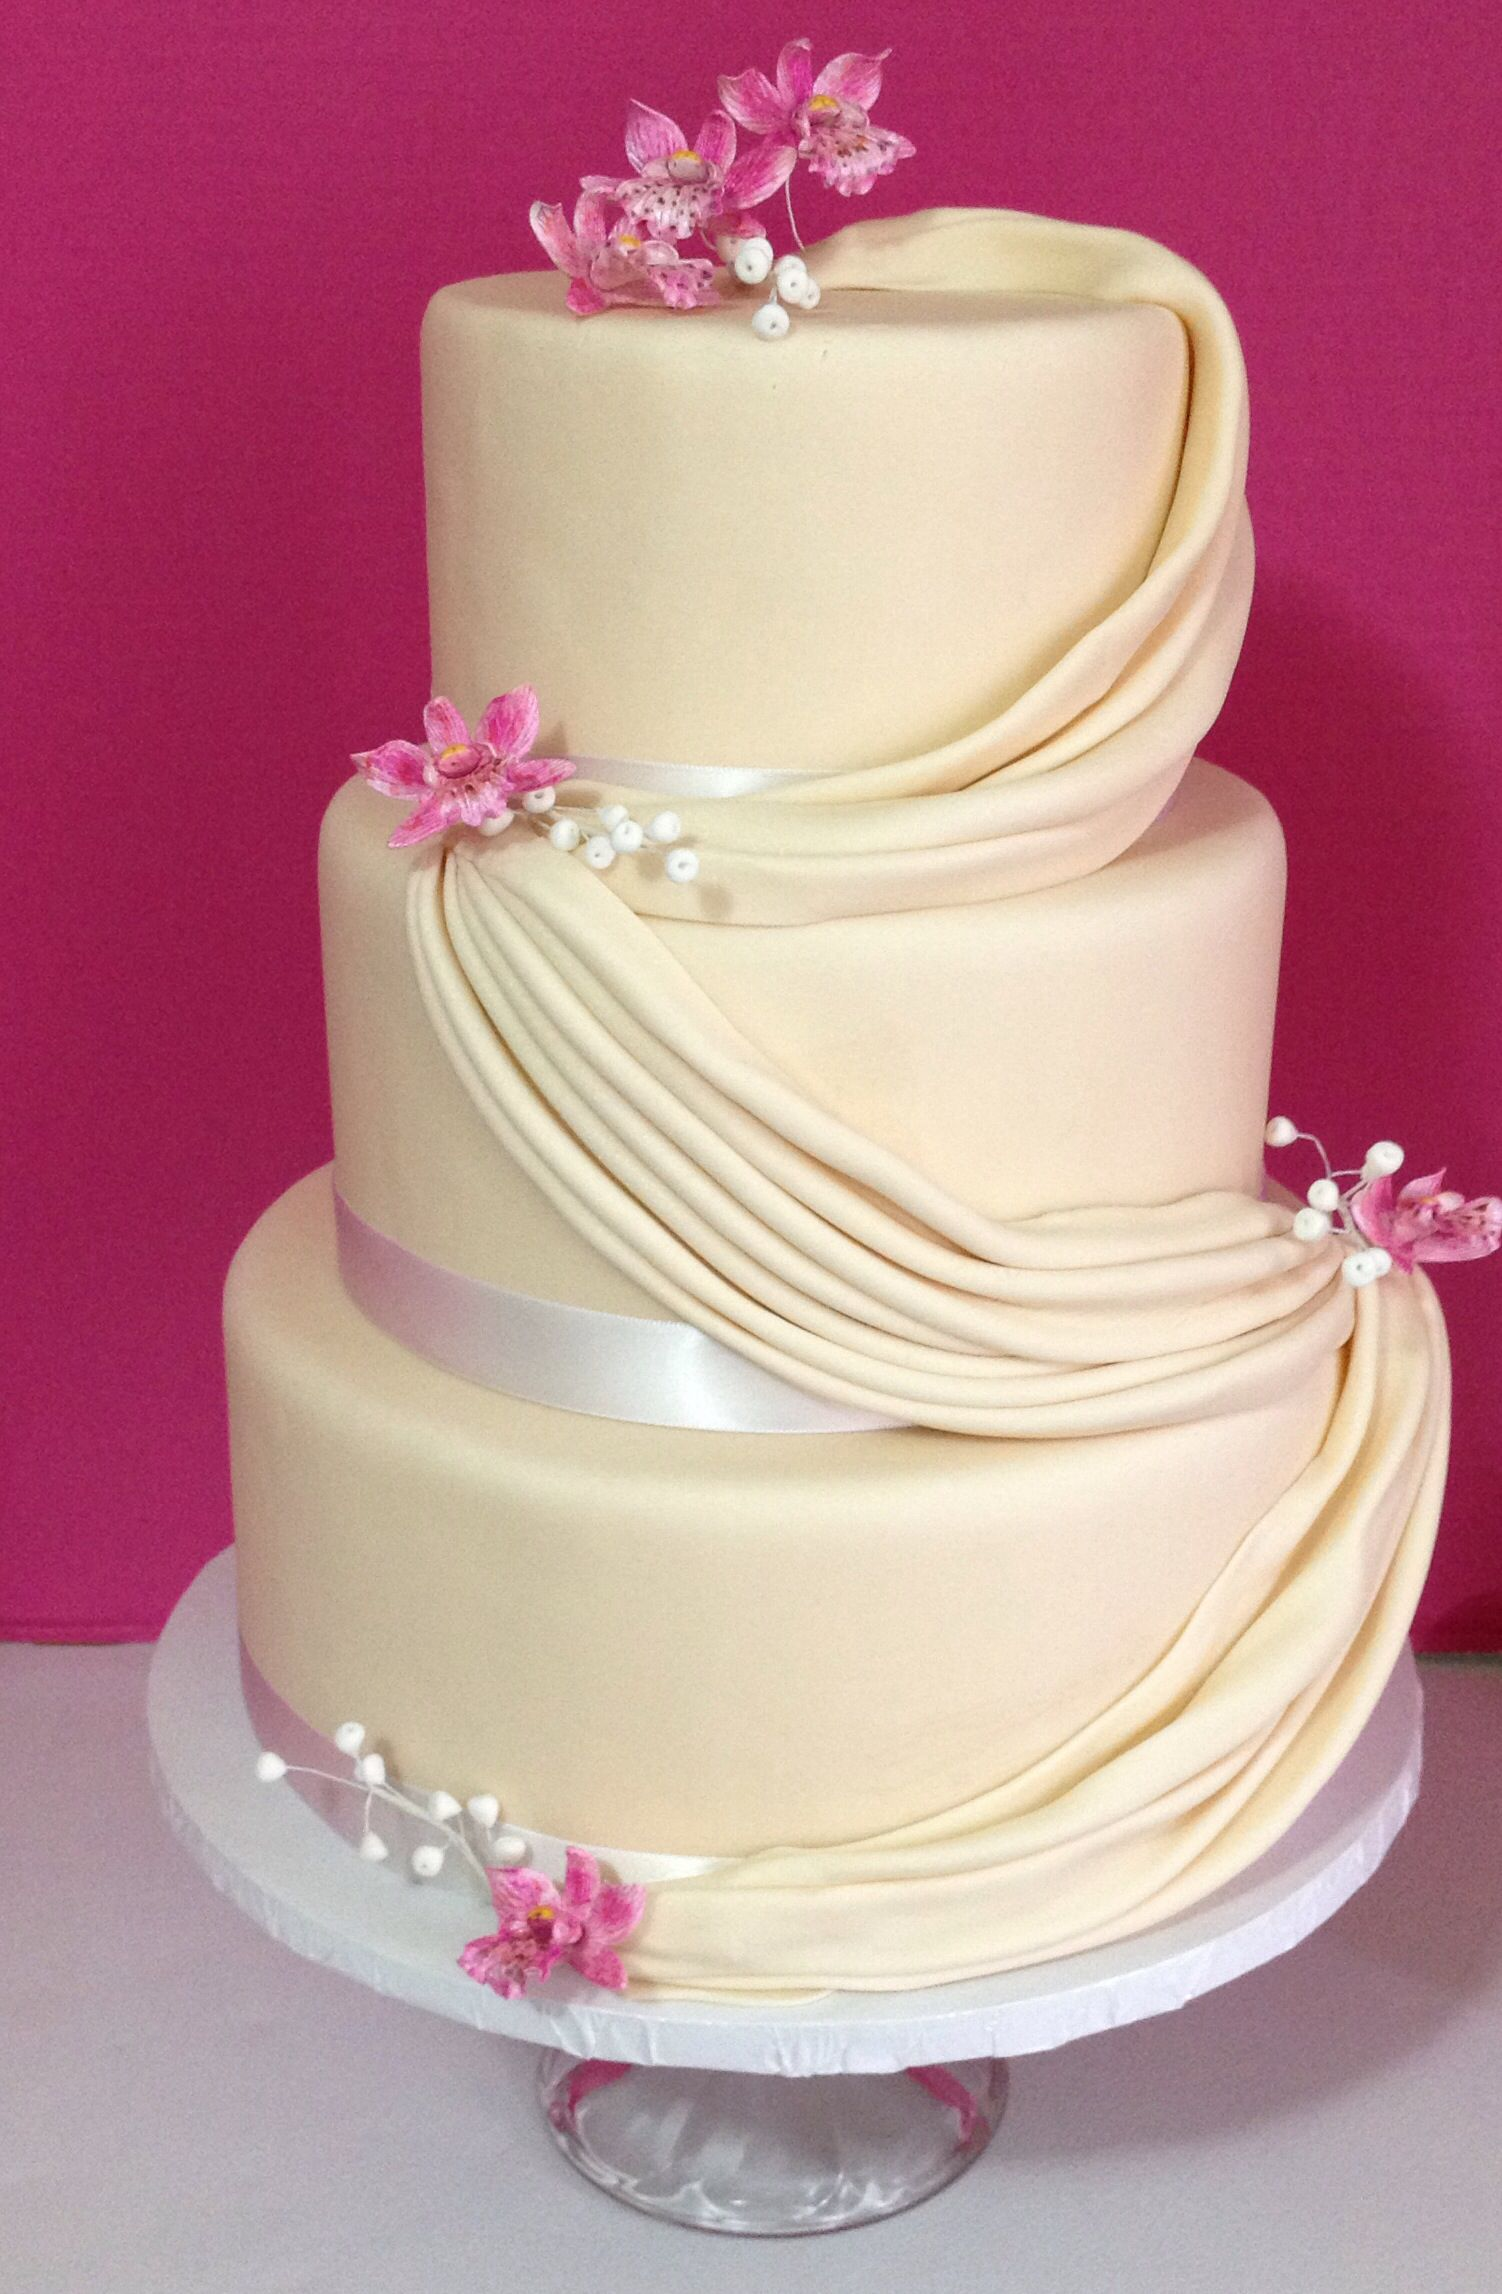 Simple but elegant line of wedding cakes | Cakes By Shara ...